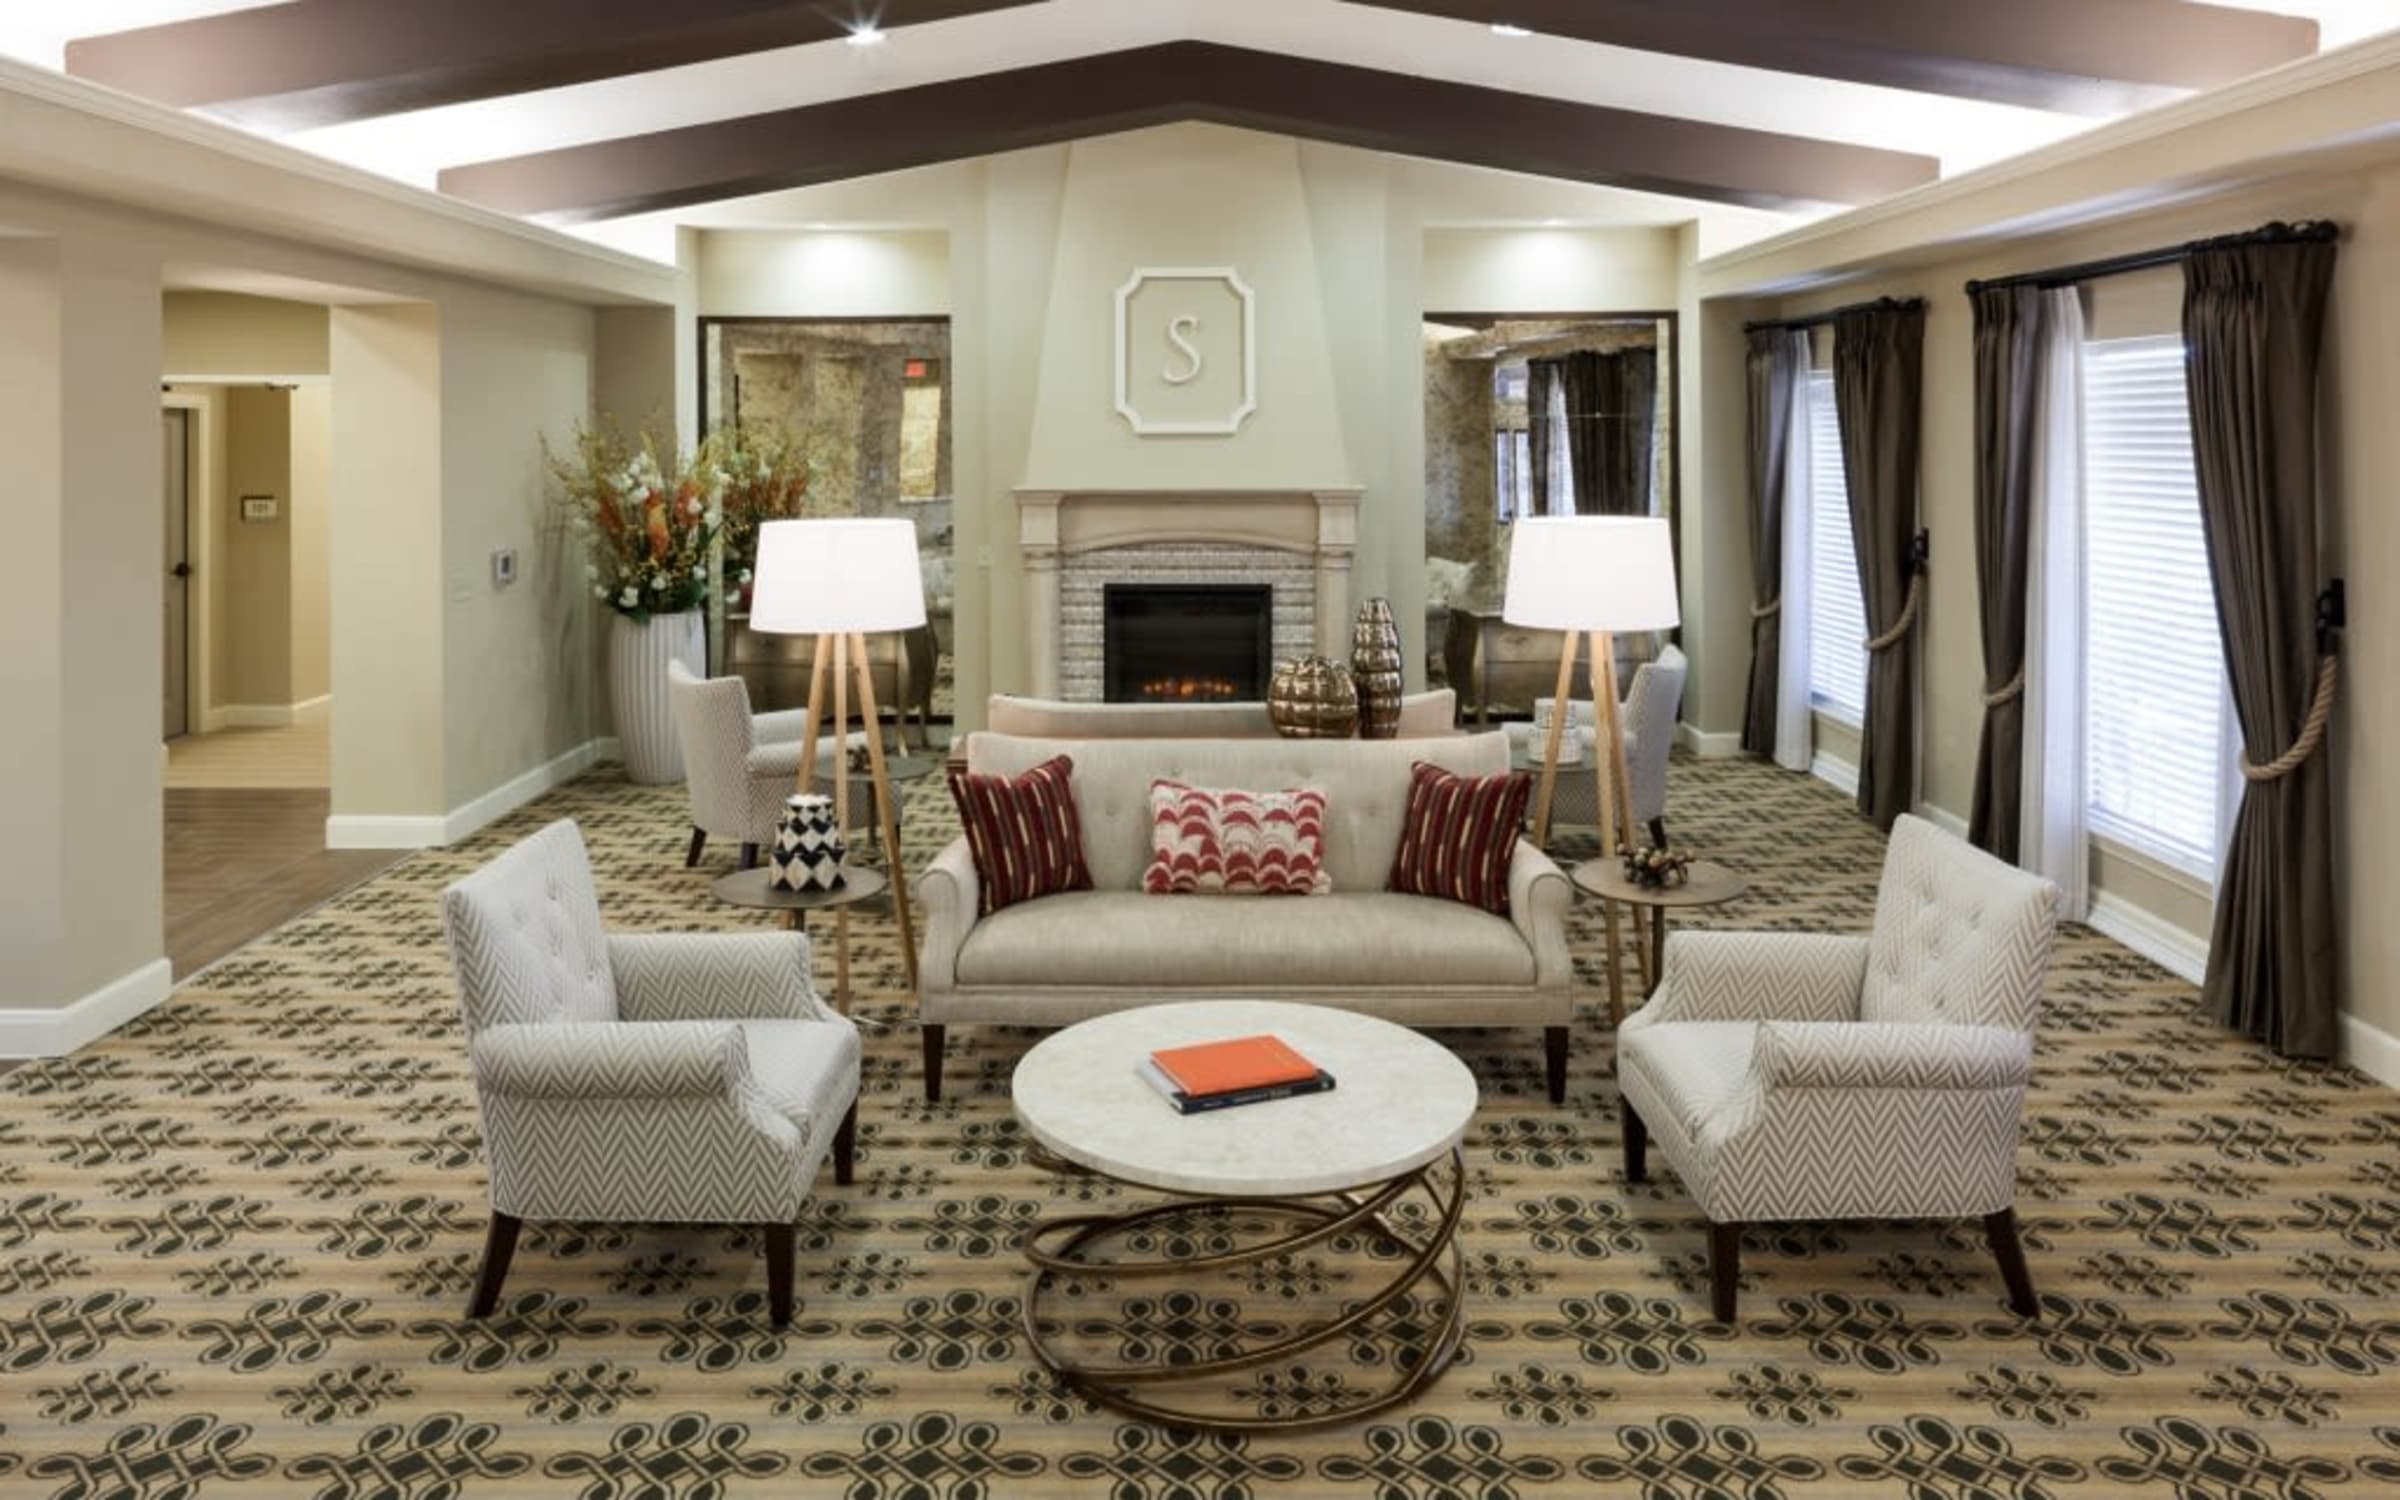 Photo gallery at Anthology of Stonebridge Ranch in McKinney, Texas